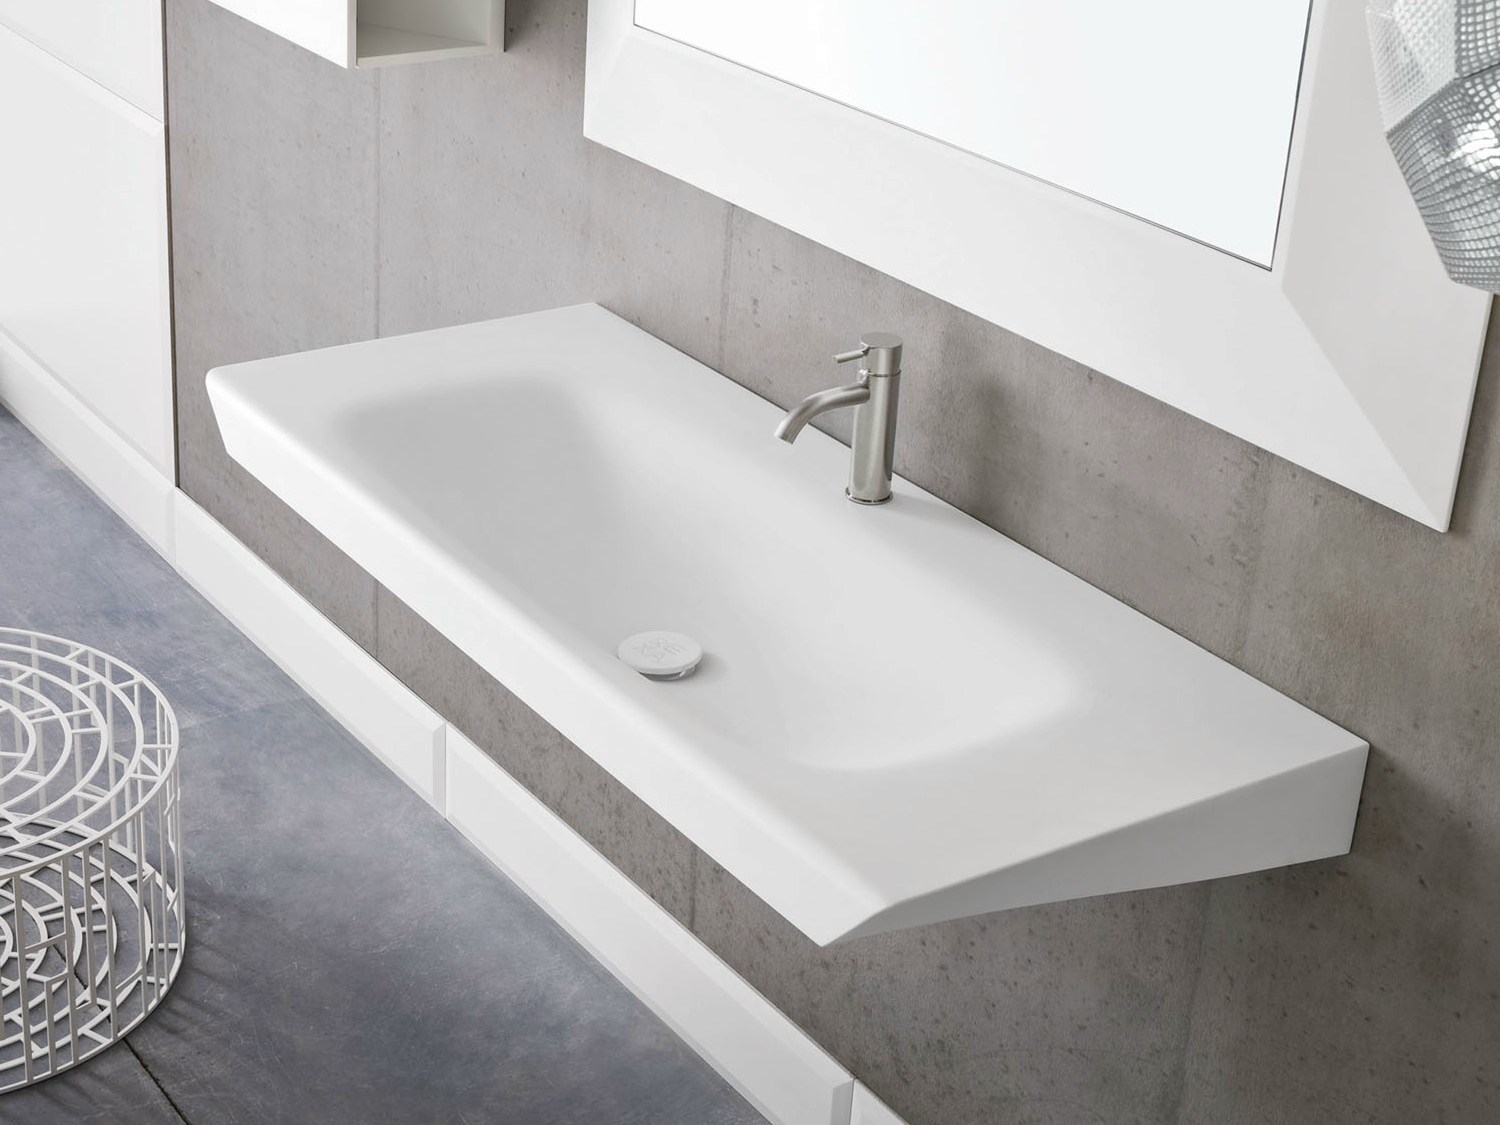 Warp lavabo by rexa design design carlo dal bianco for Lavabo design